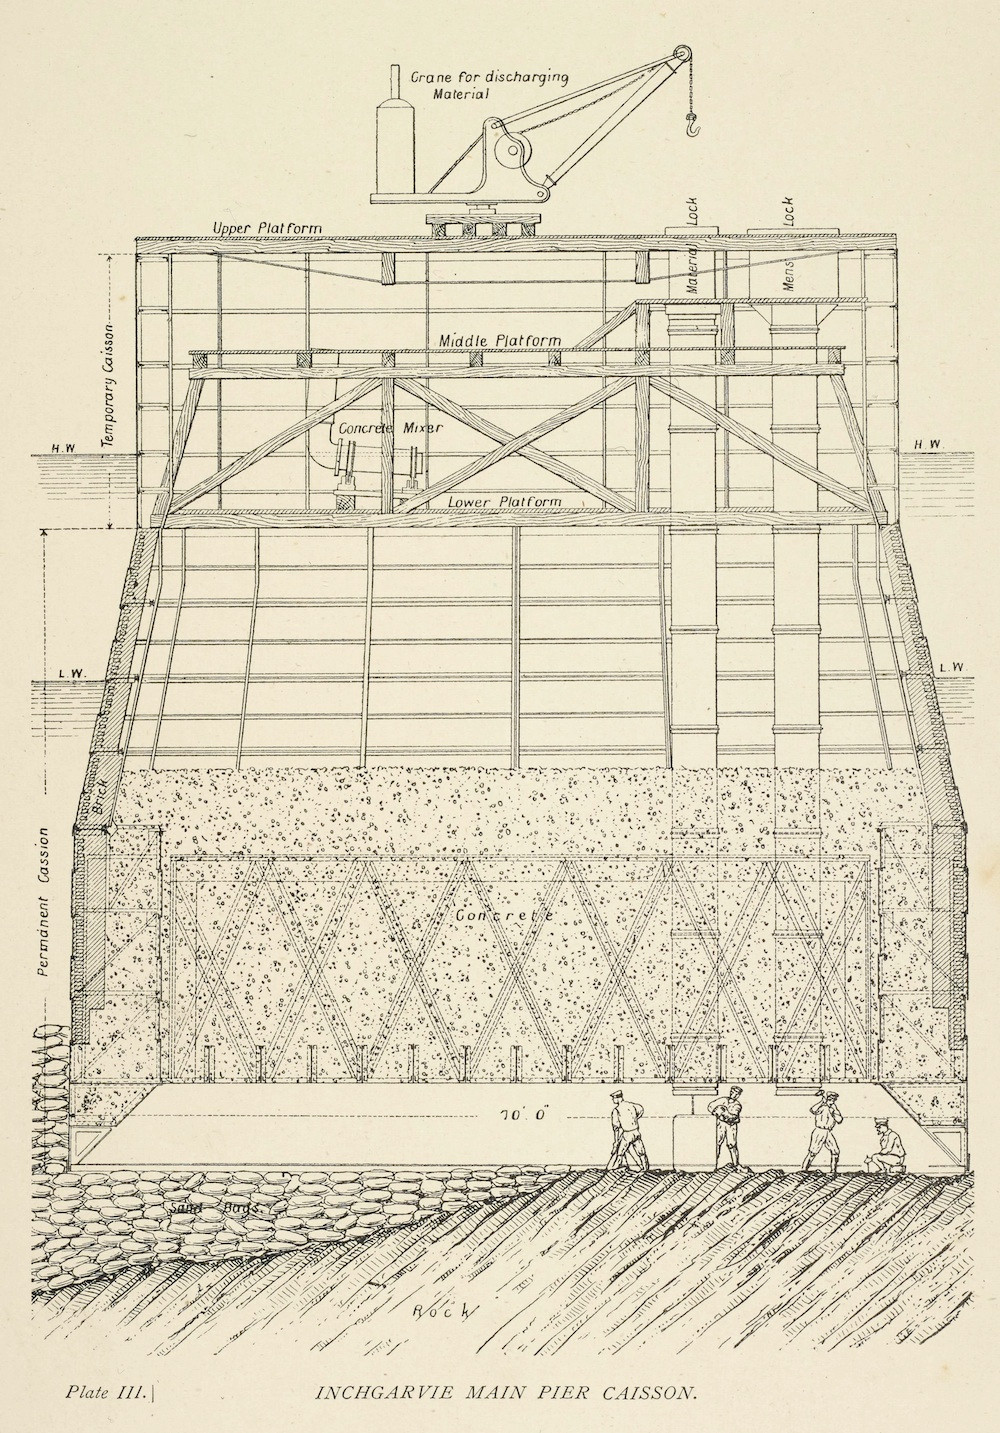 Diagram of a caisson of the Forth railway bridge